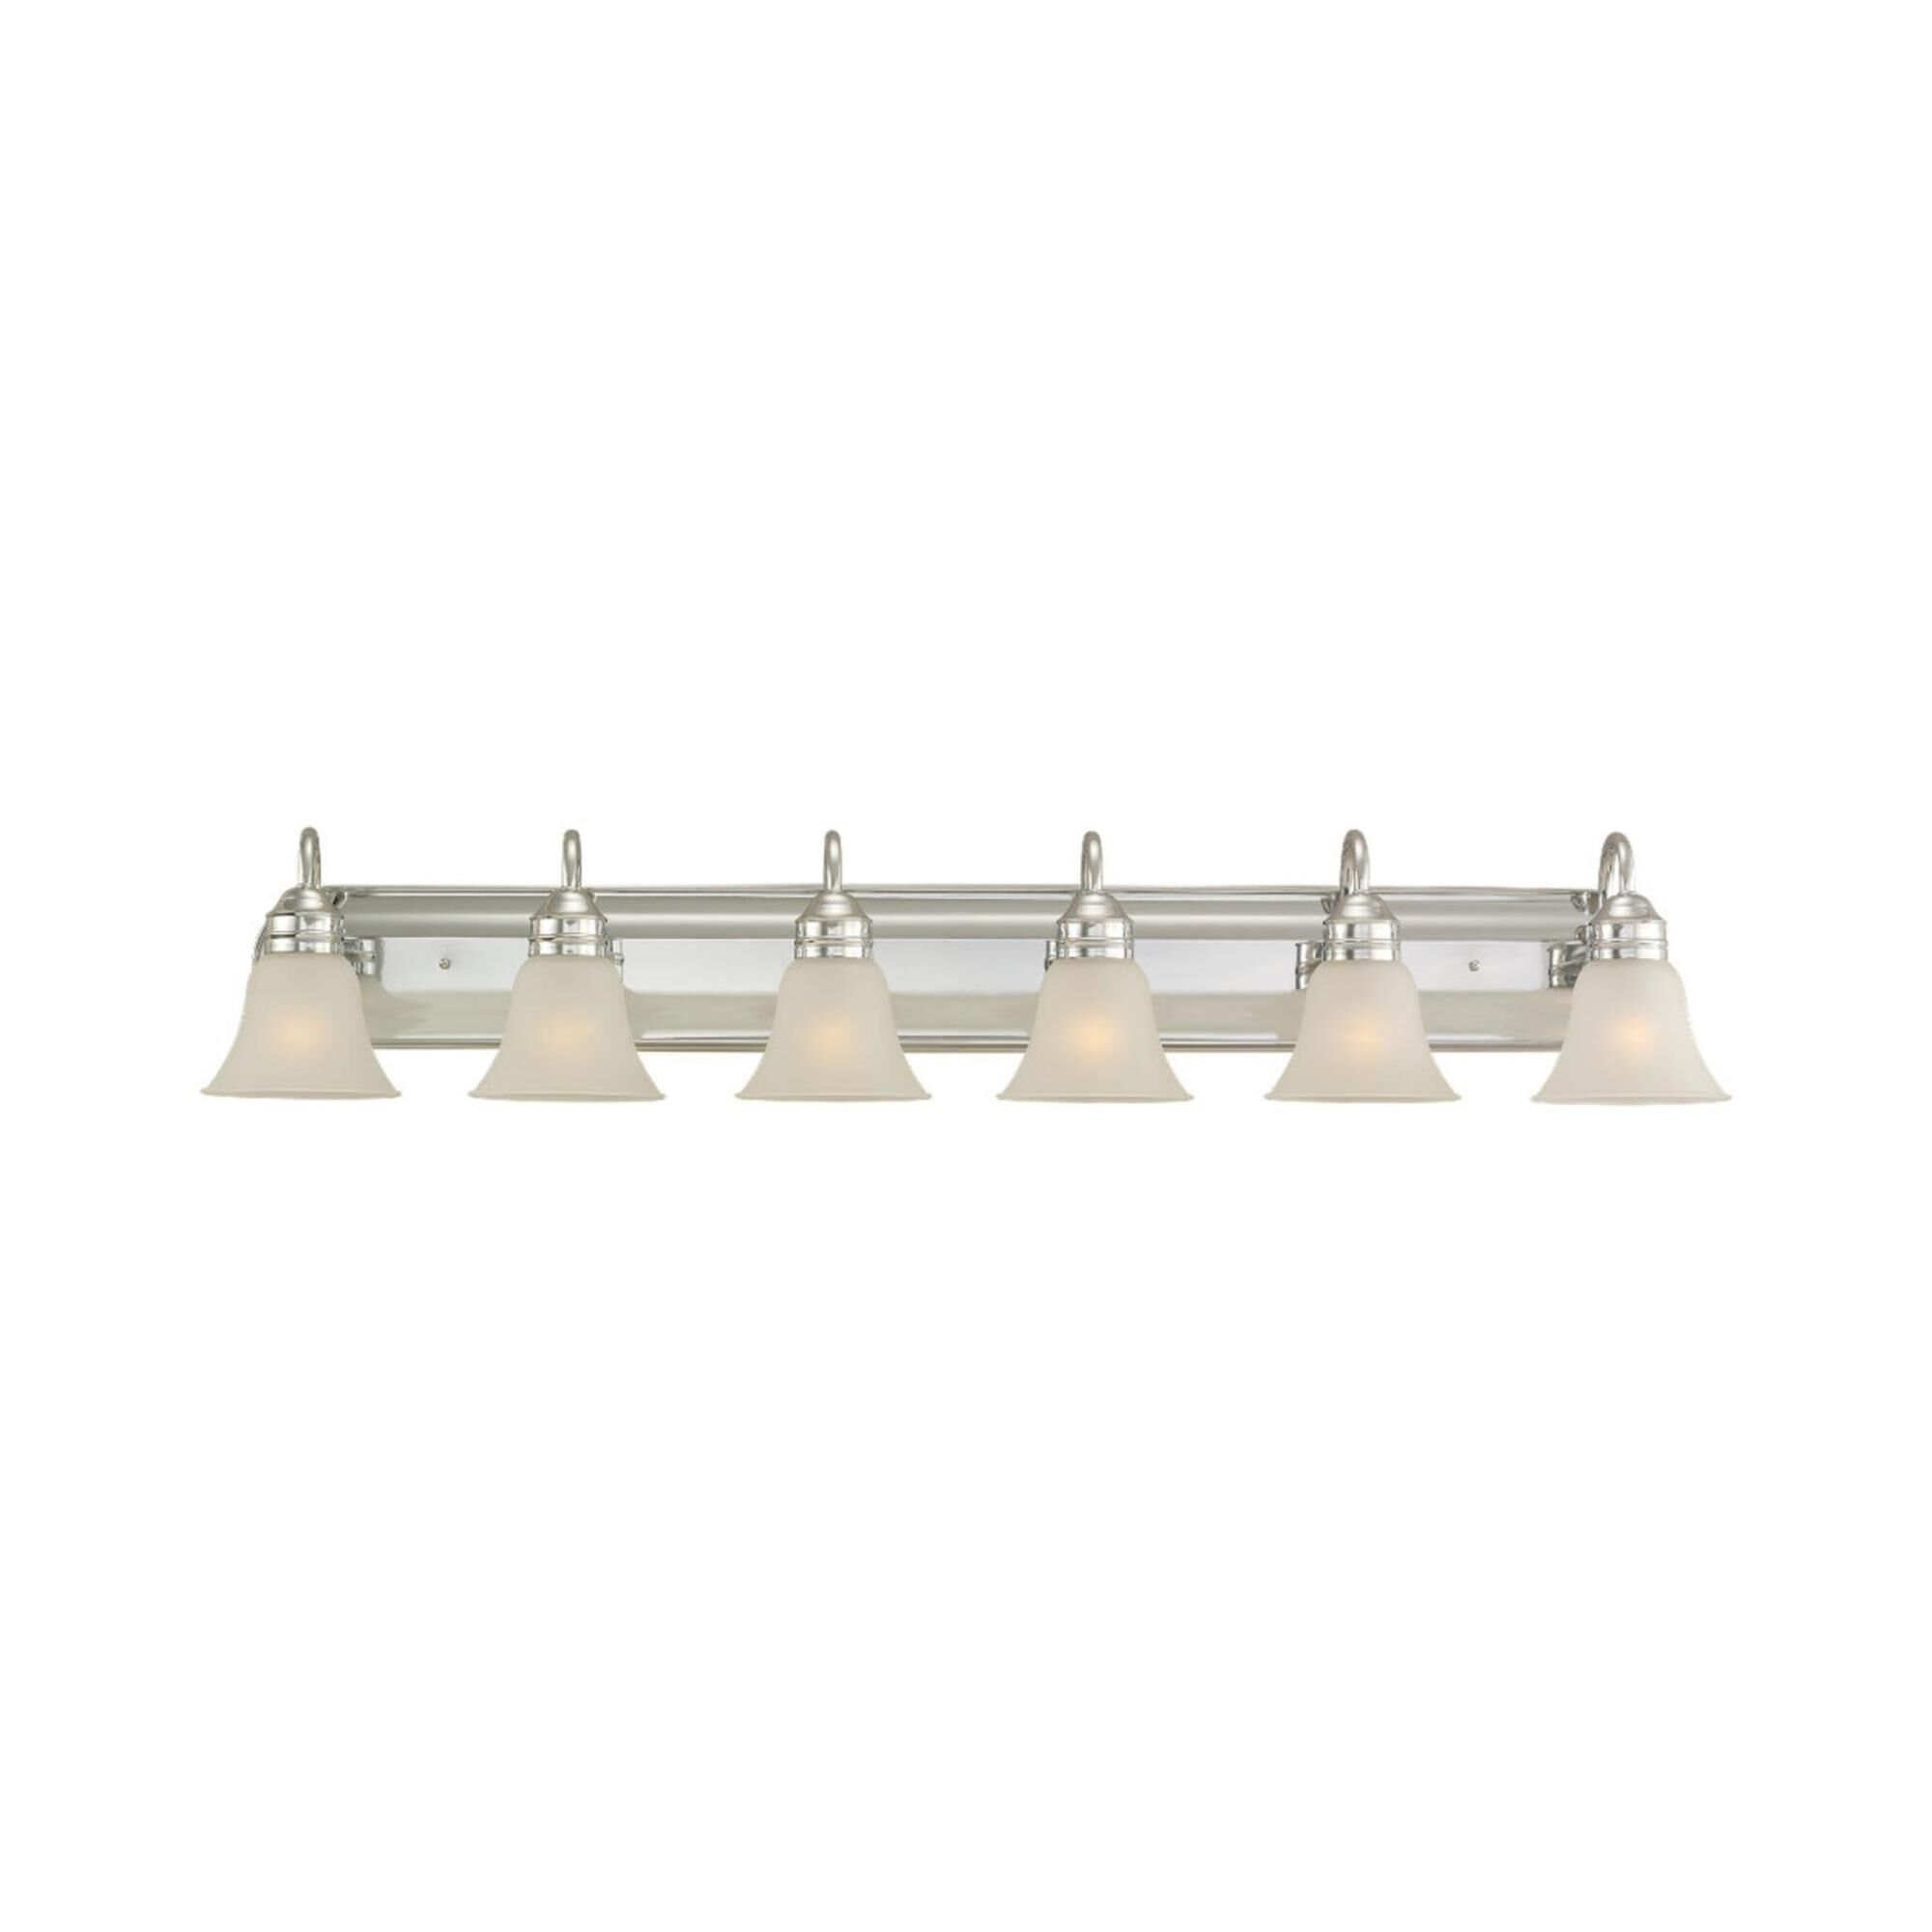 Gladstone 50 Inch 6 Light Bath Vanity Light Capitol Lighting In 2020 Vanity Lighting Bath Vanity Lighting Bath Vanities